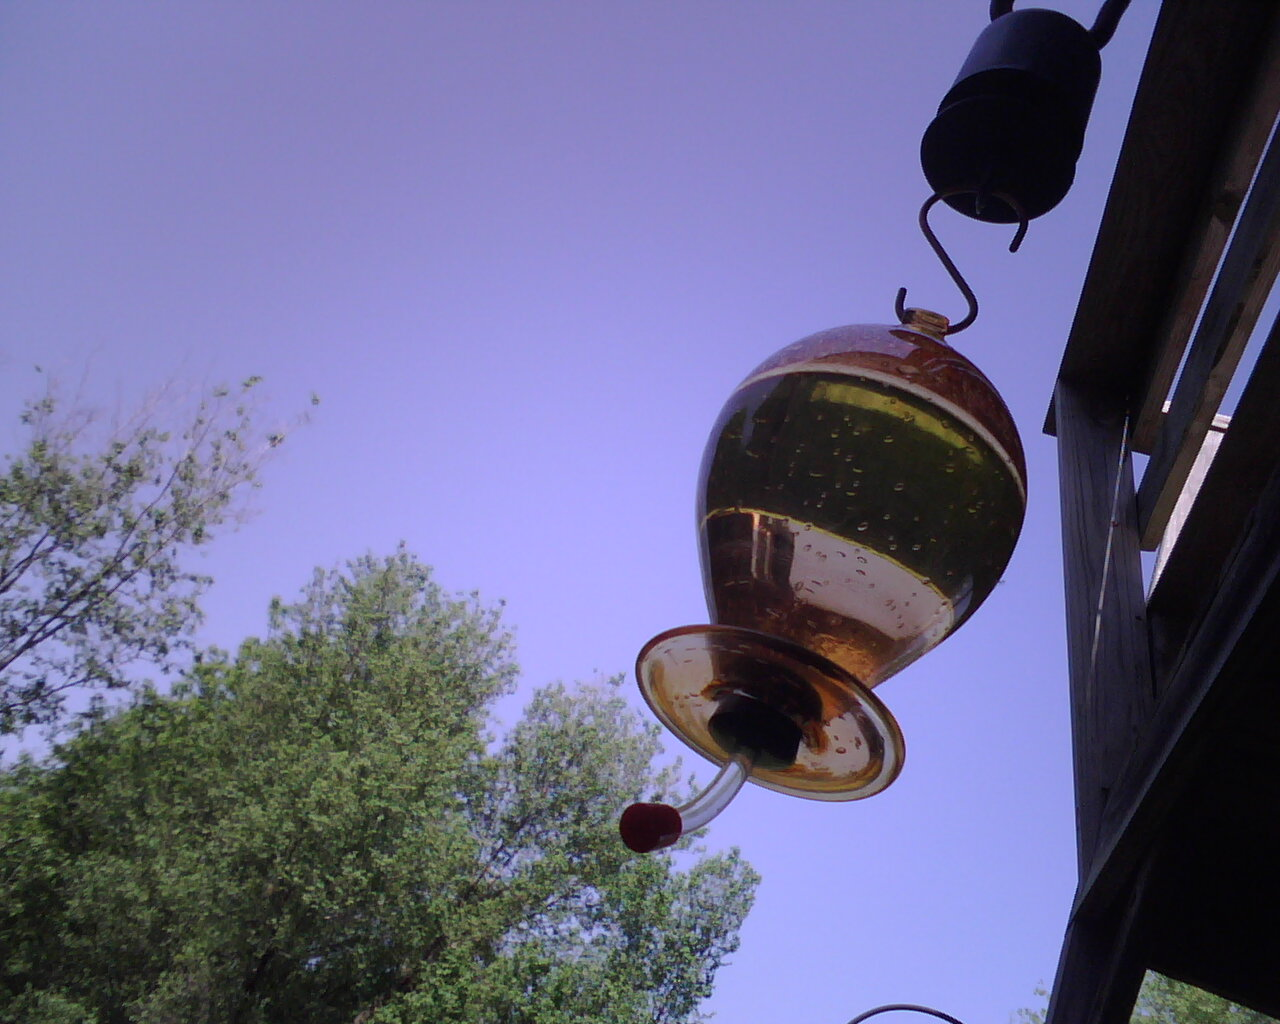 Waiting for hummingbirds